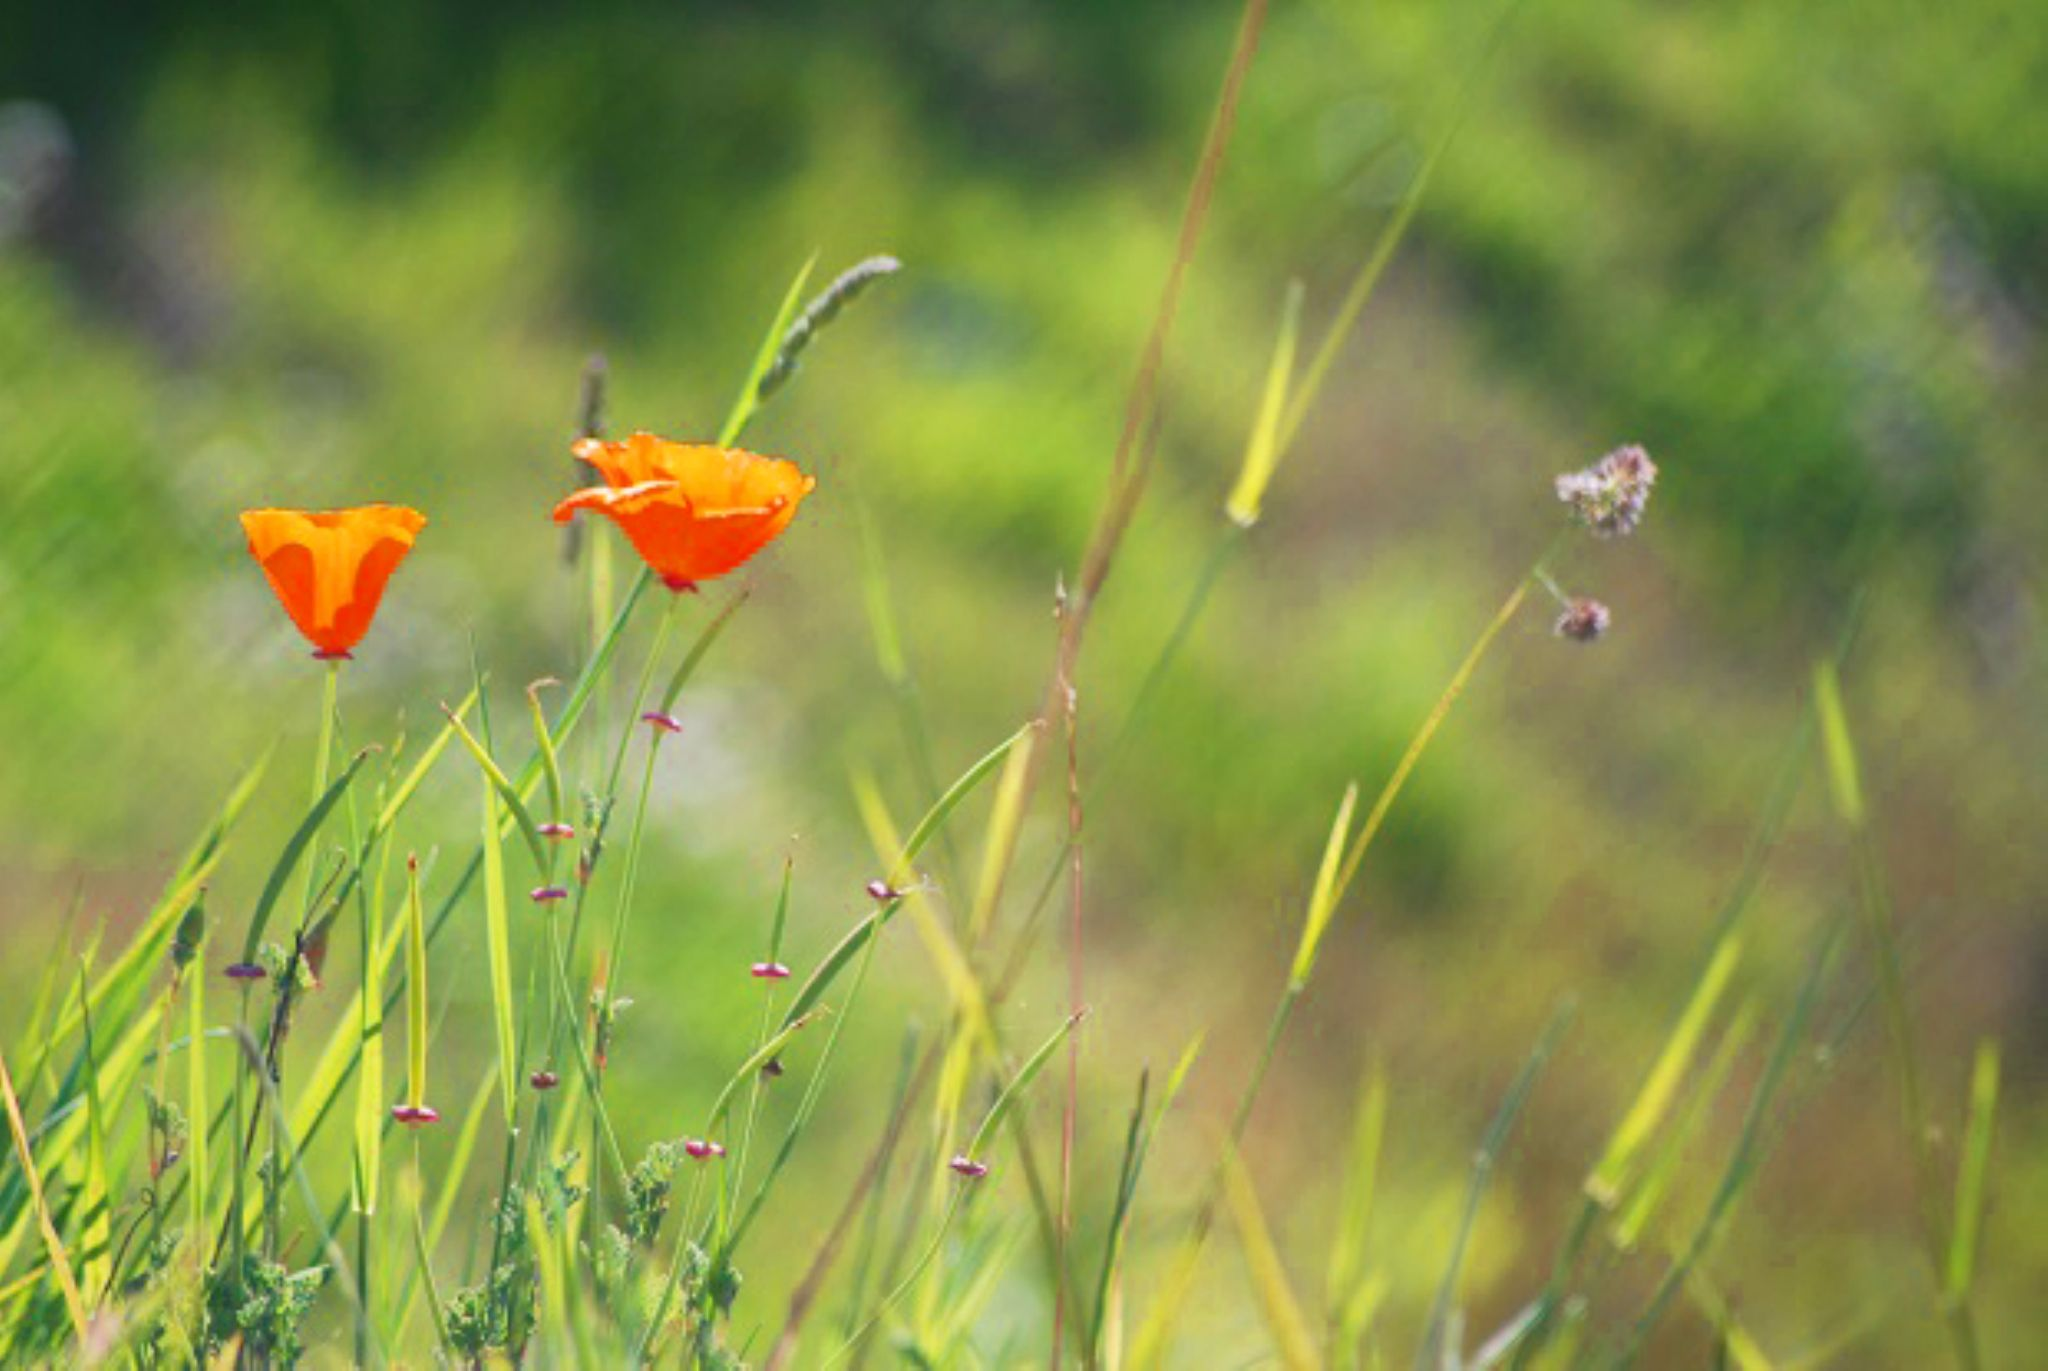 Poppies in the wild by heathercartermartin